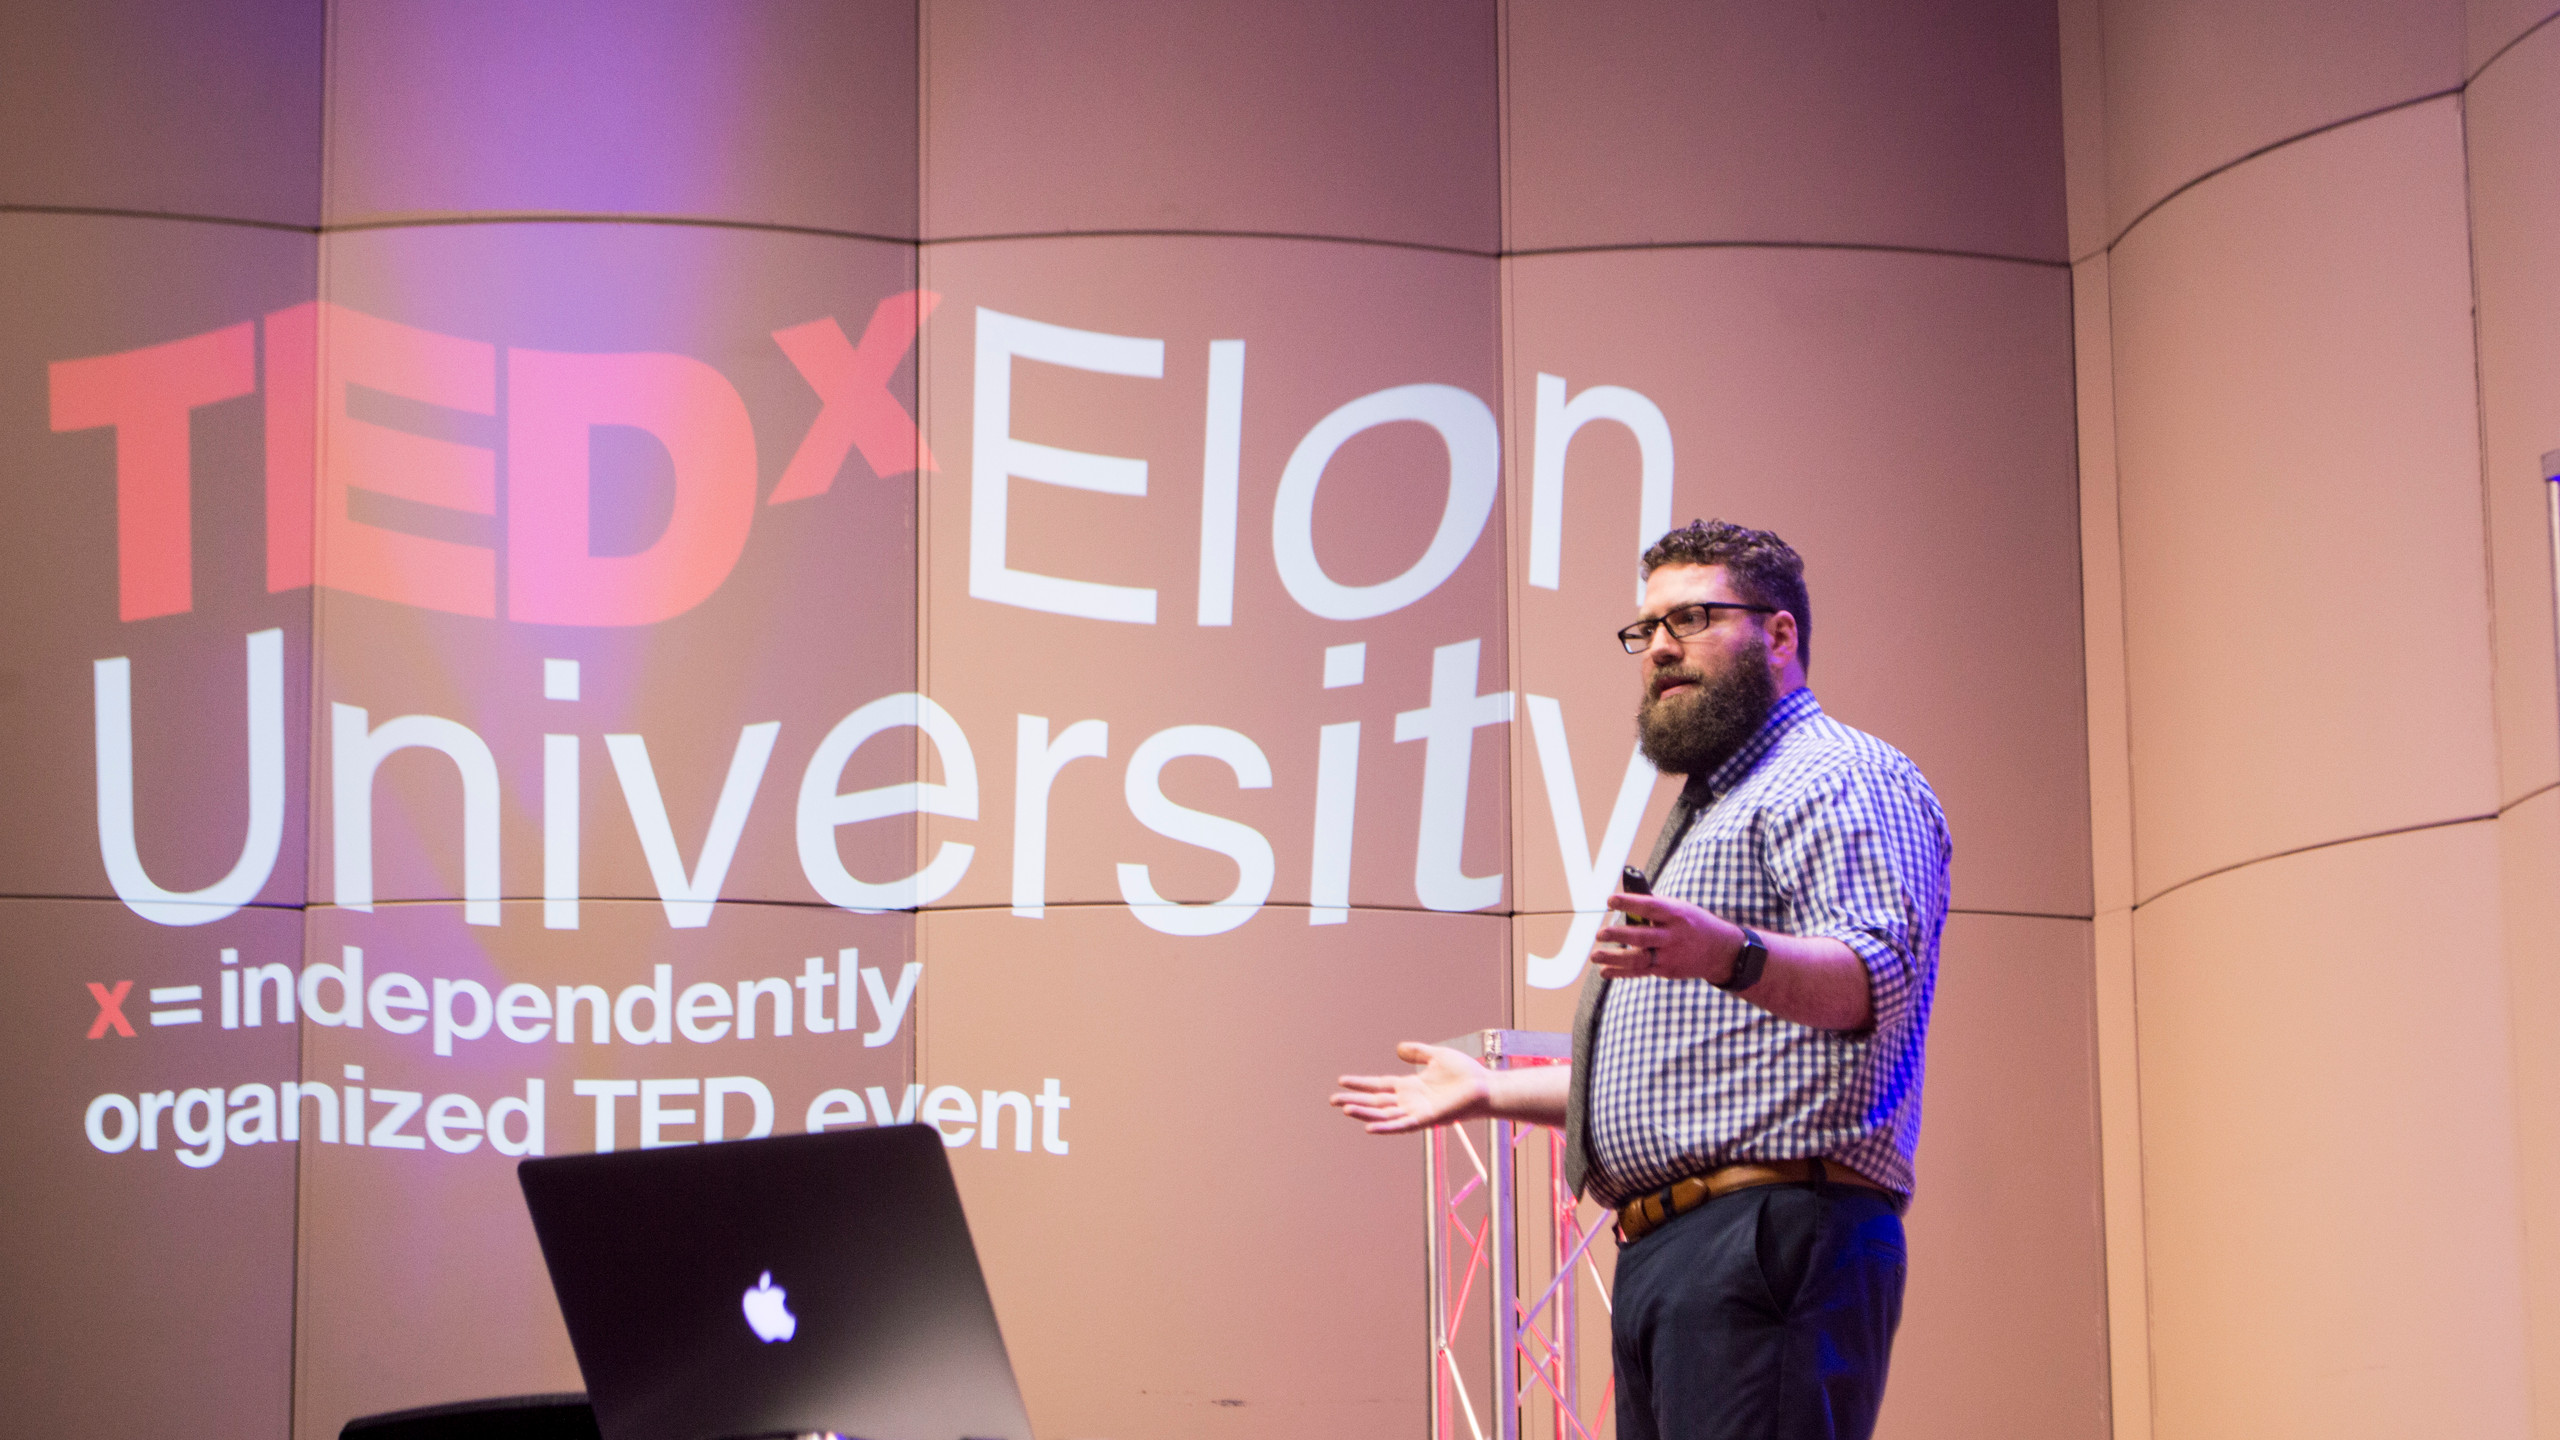 Michael Vaughn, who runs the Elon University Maker Hub, talked about failure as a key to learning.